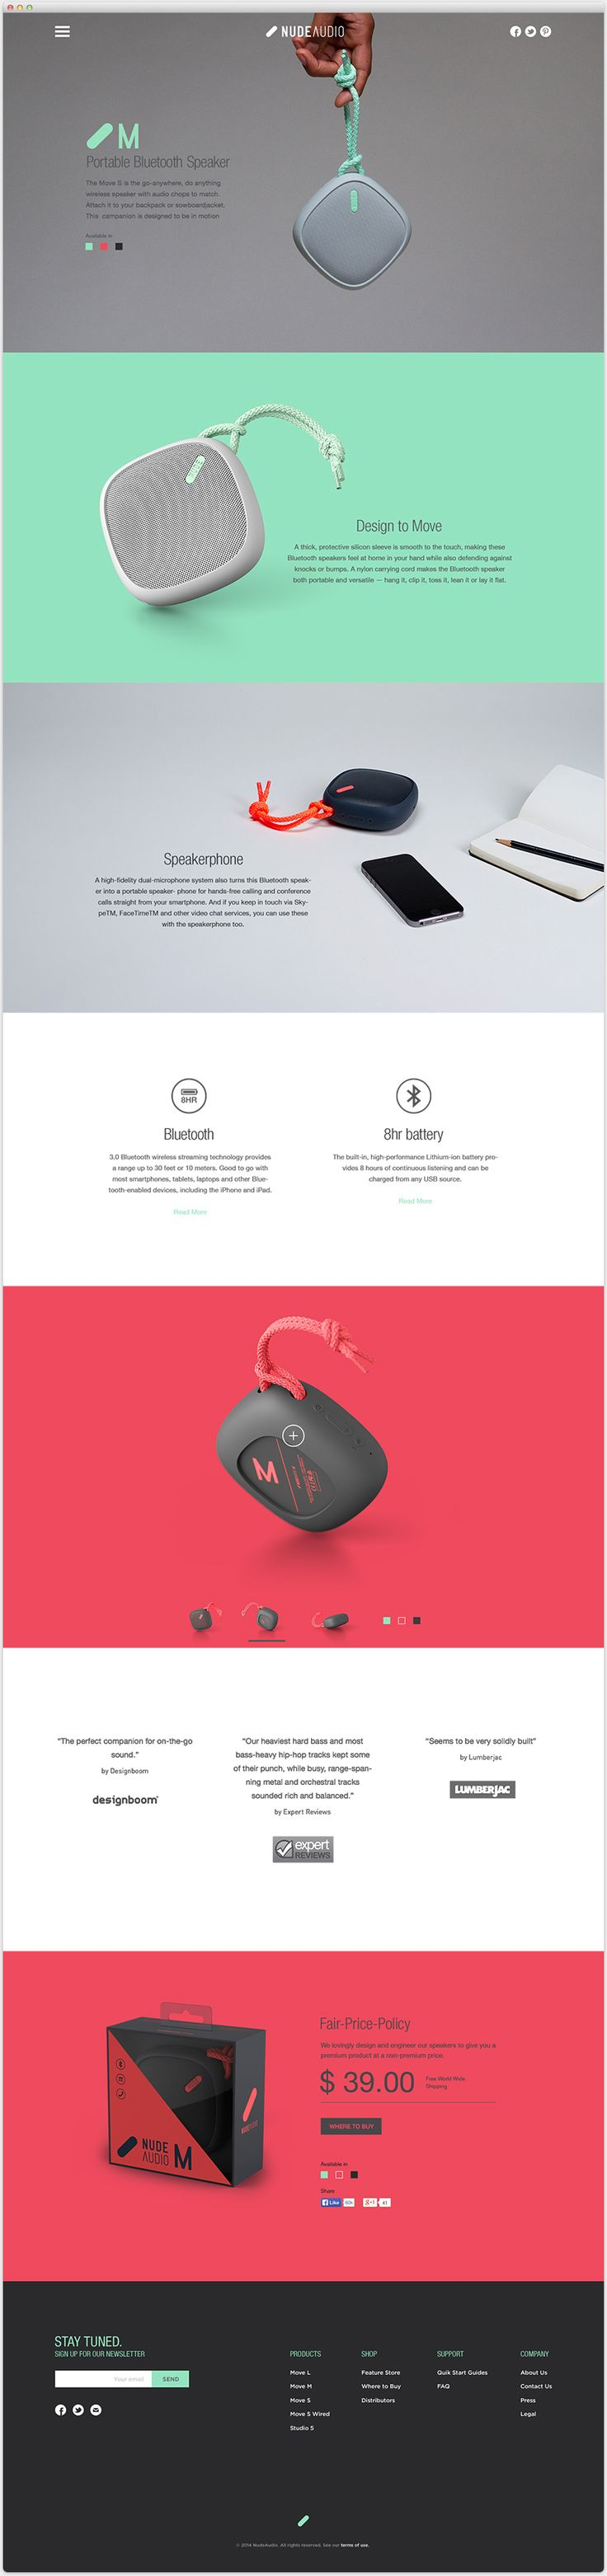 Nude Audio Website by André Britz on Behance